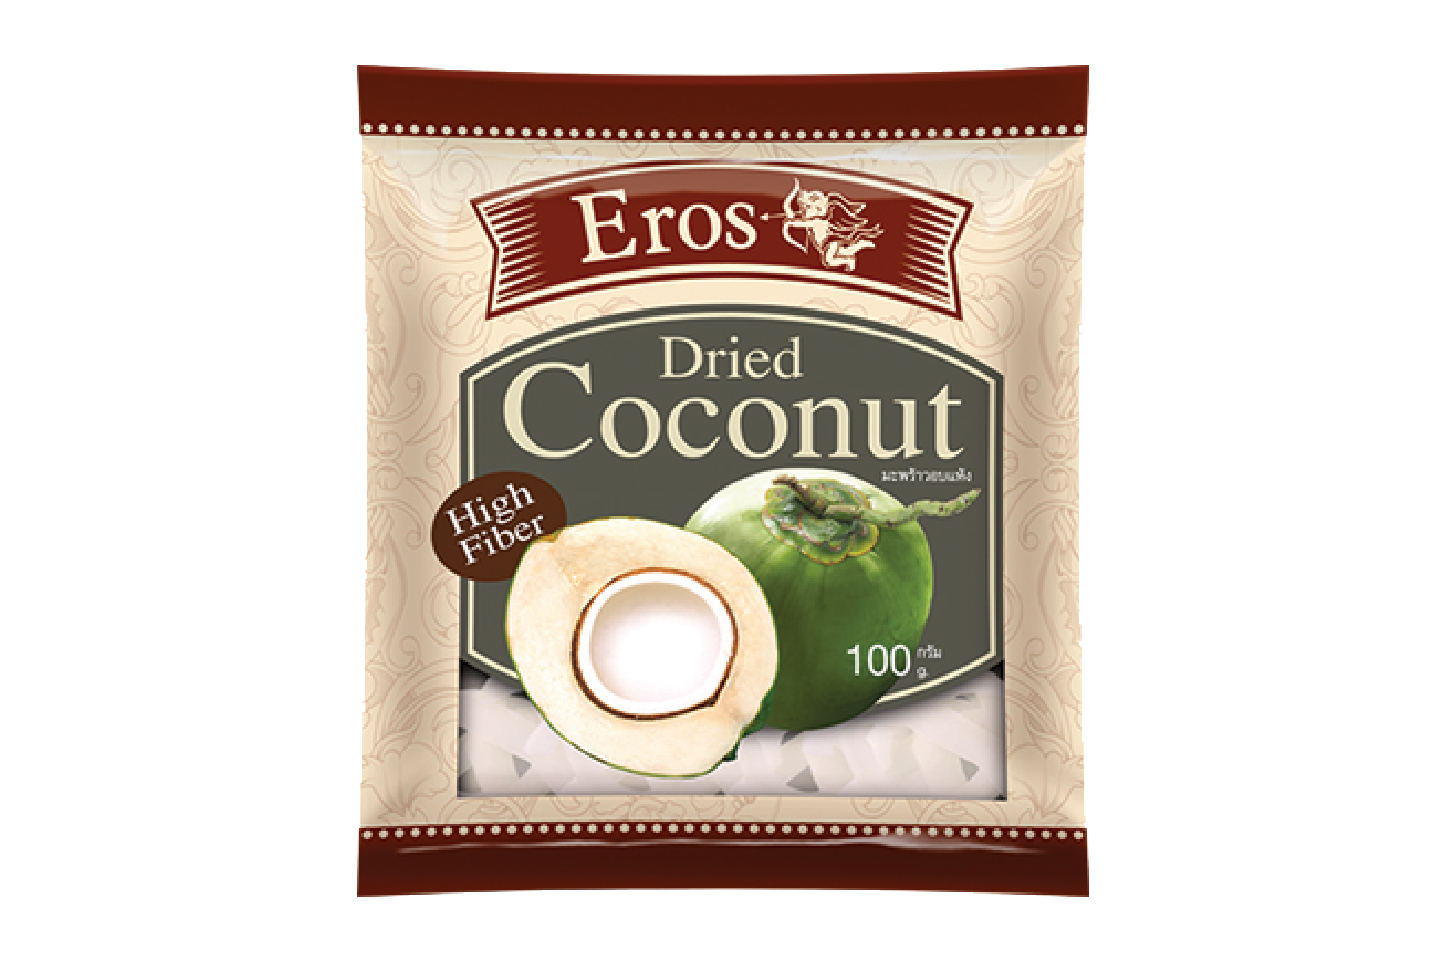 EROS Dried Coconut